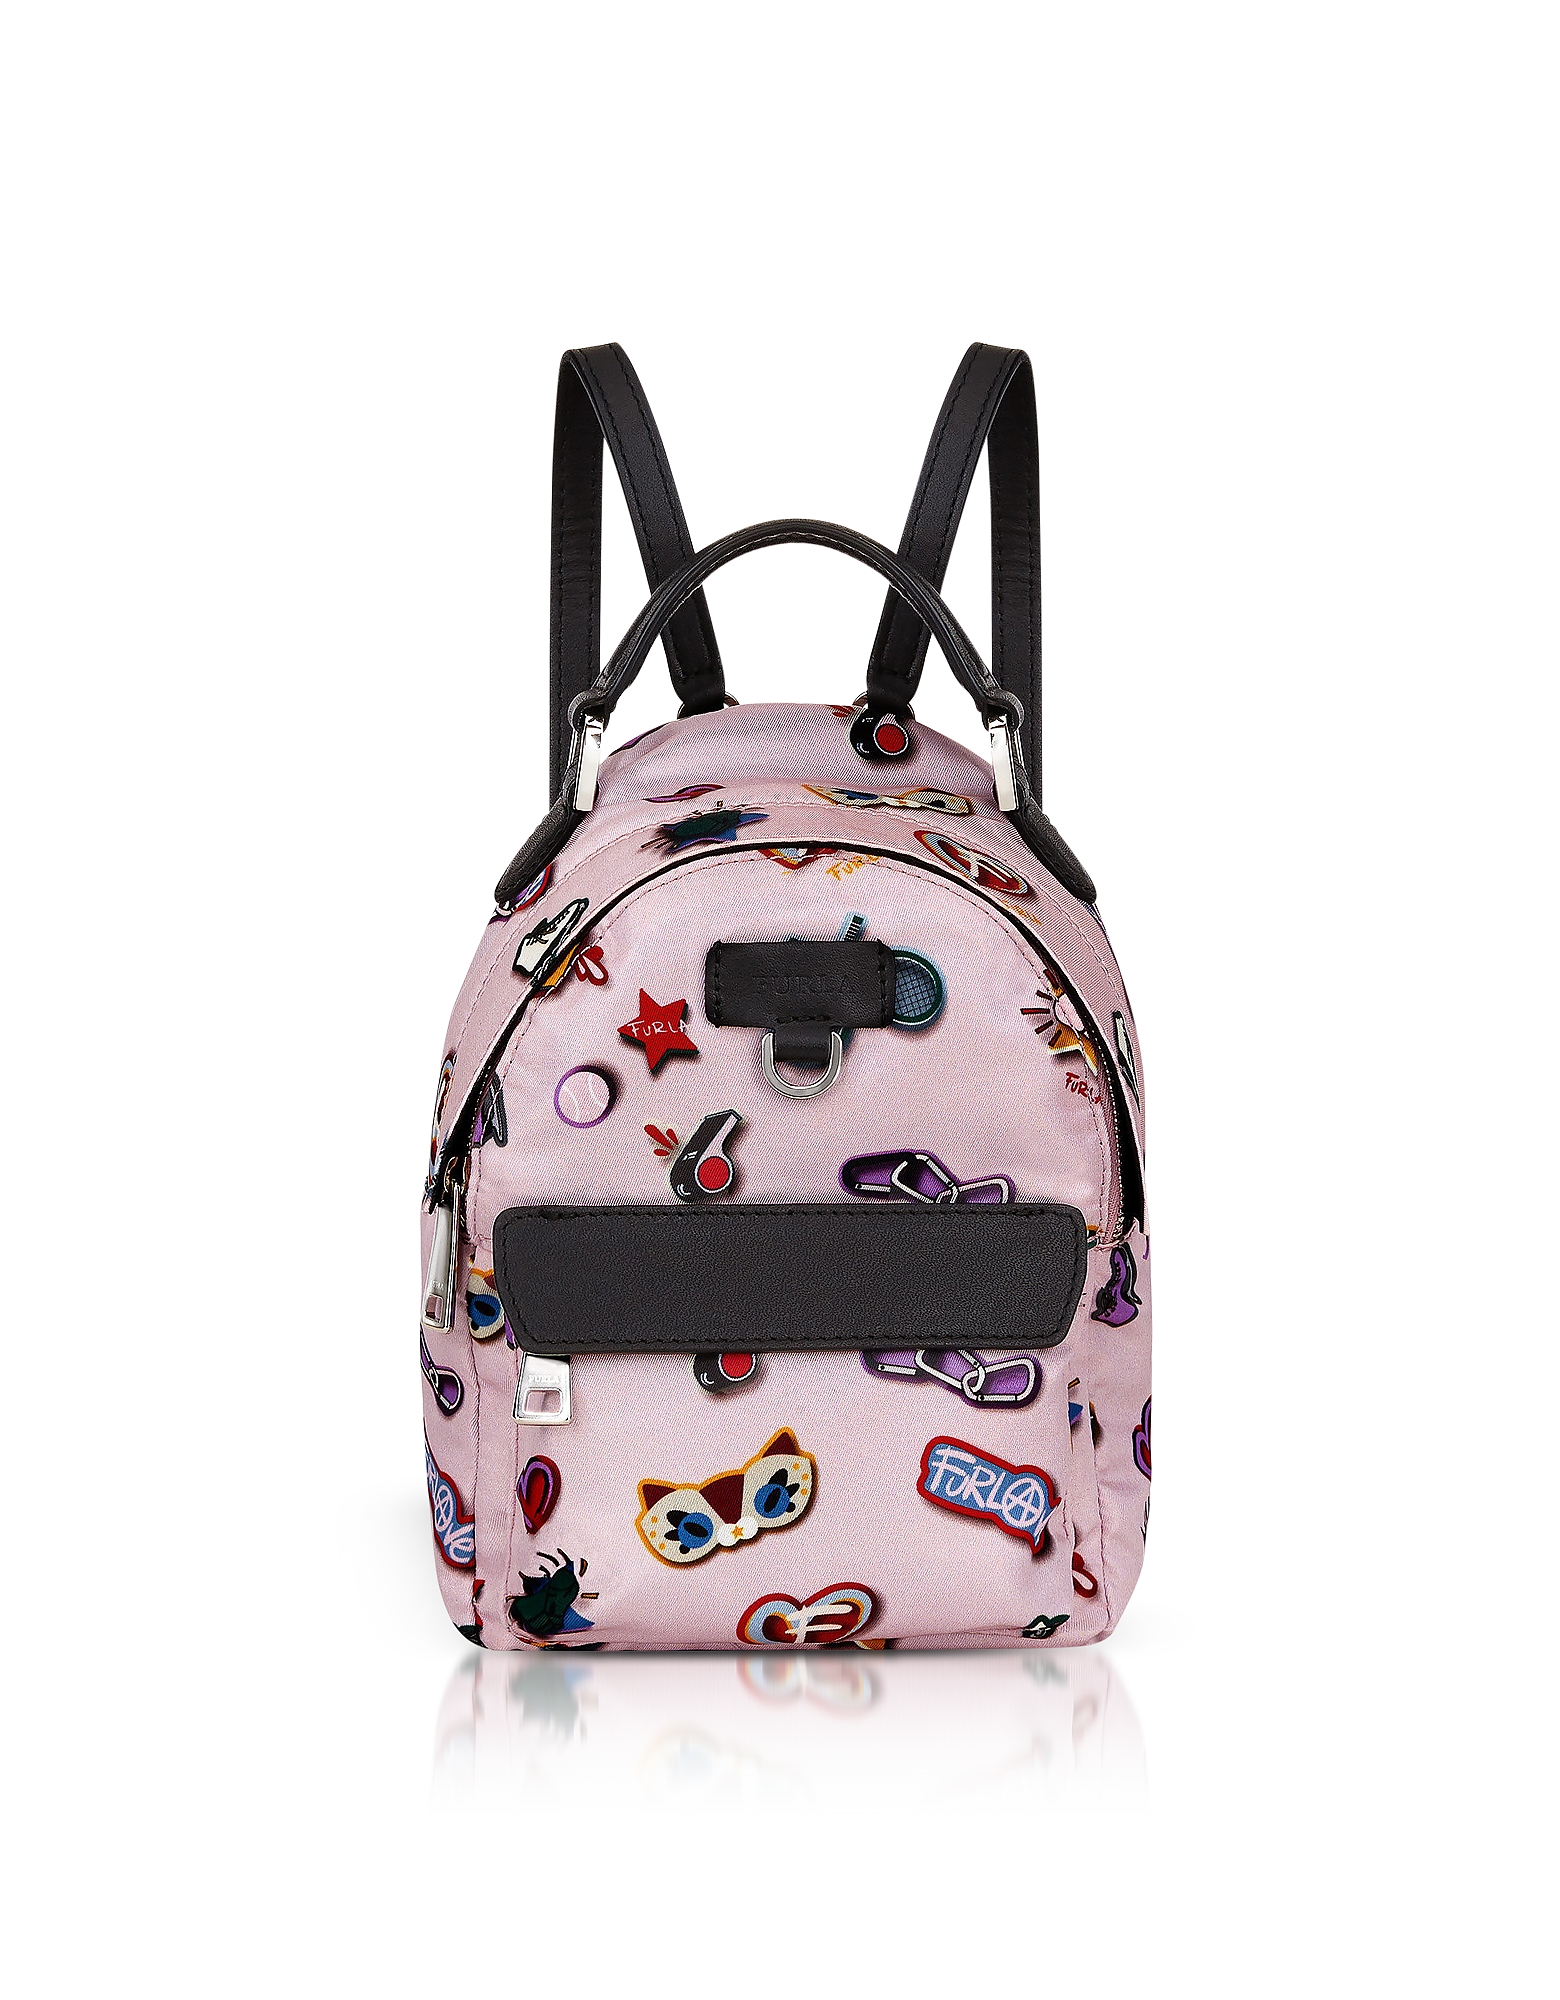 Toni Camelia Mini Favola Backpack. Toni Camelia Mini Favola Backpack crafted in sport print nylon with leather accents, is the MVP of fun gets you thr